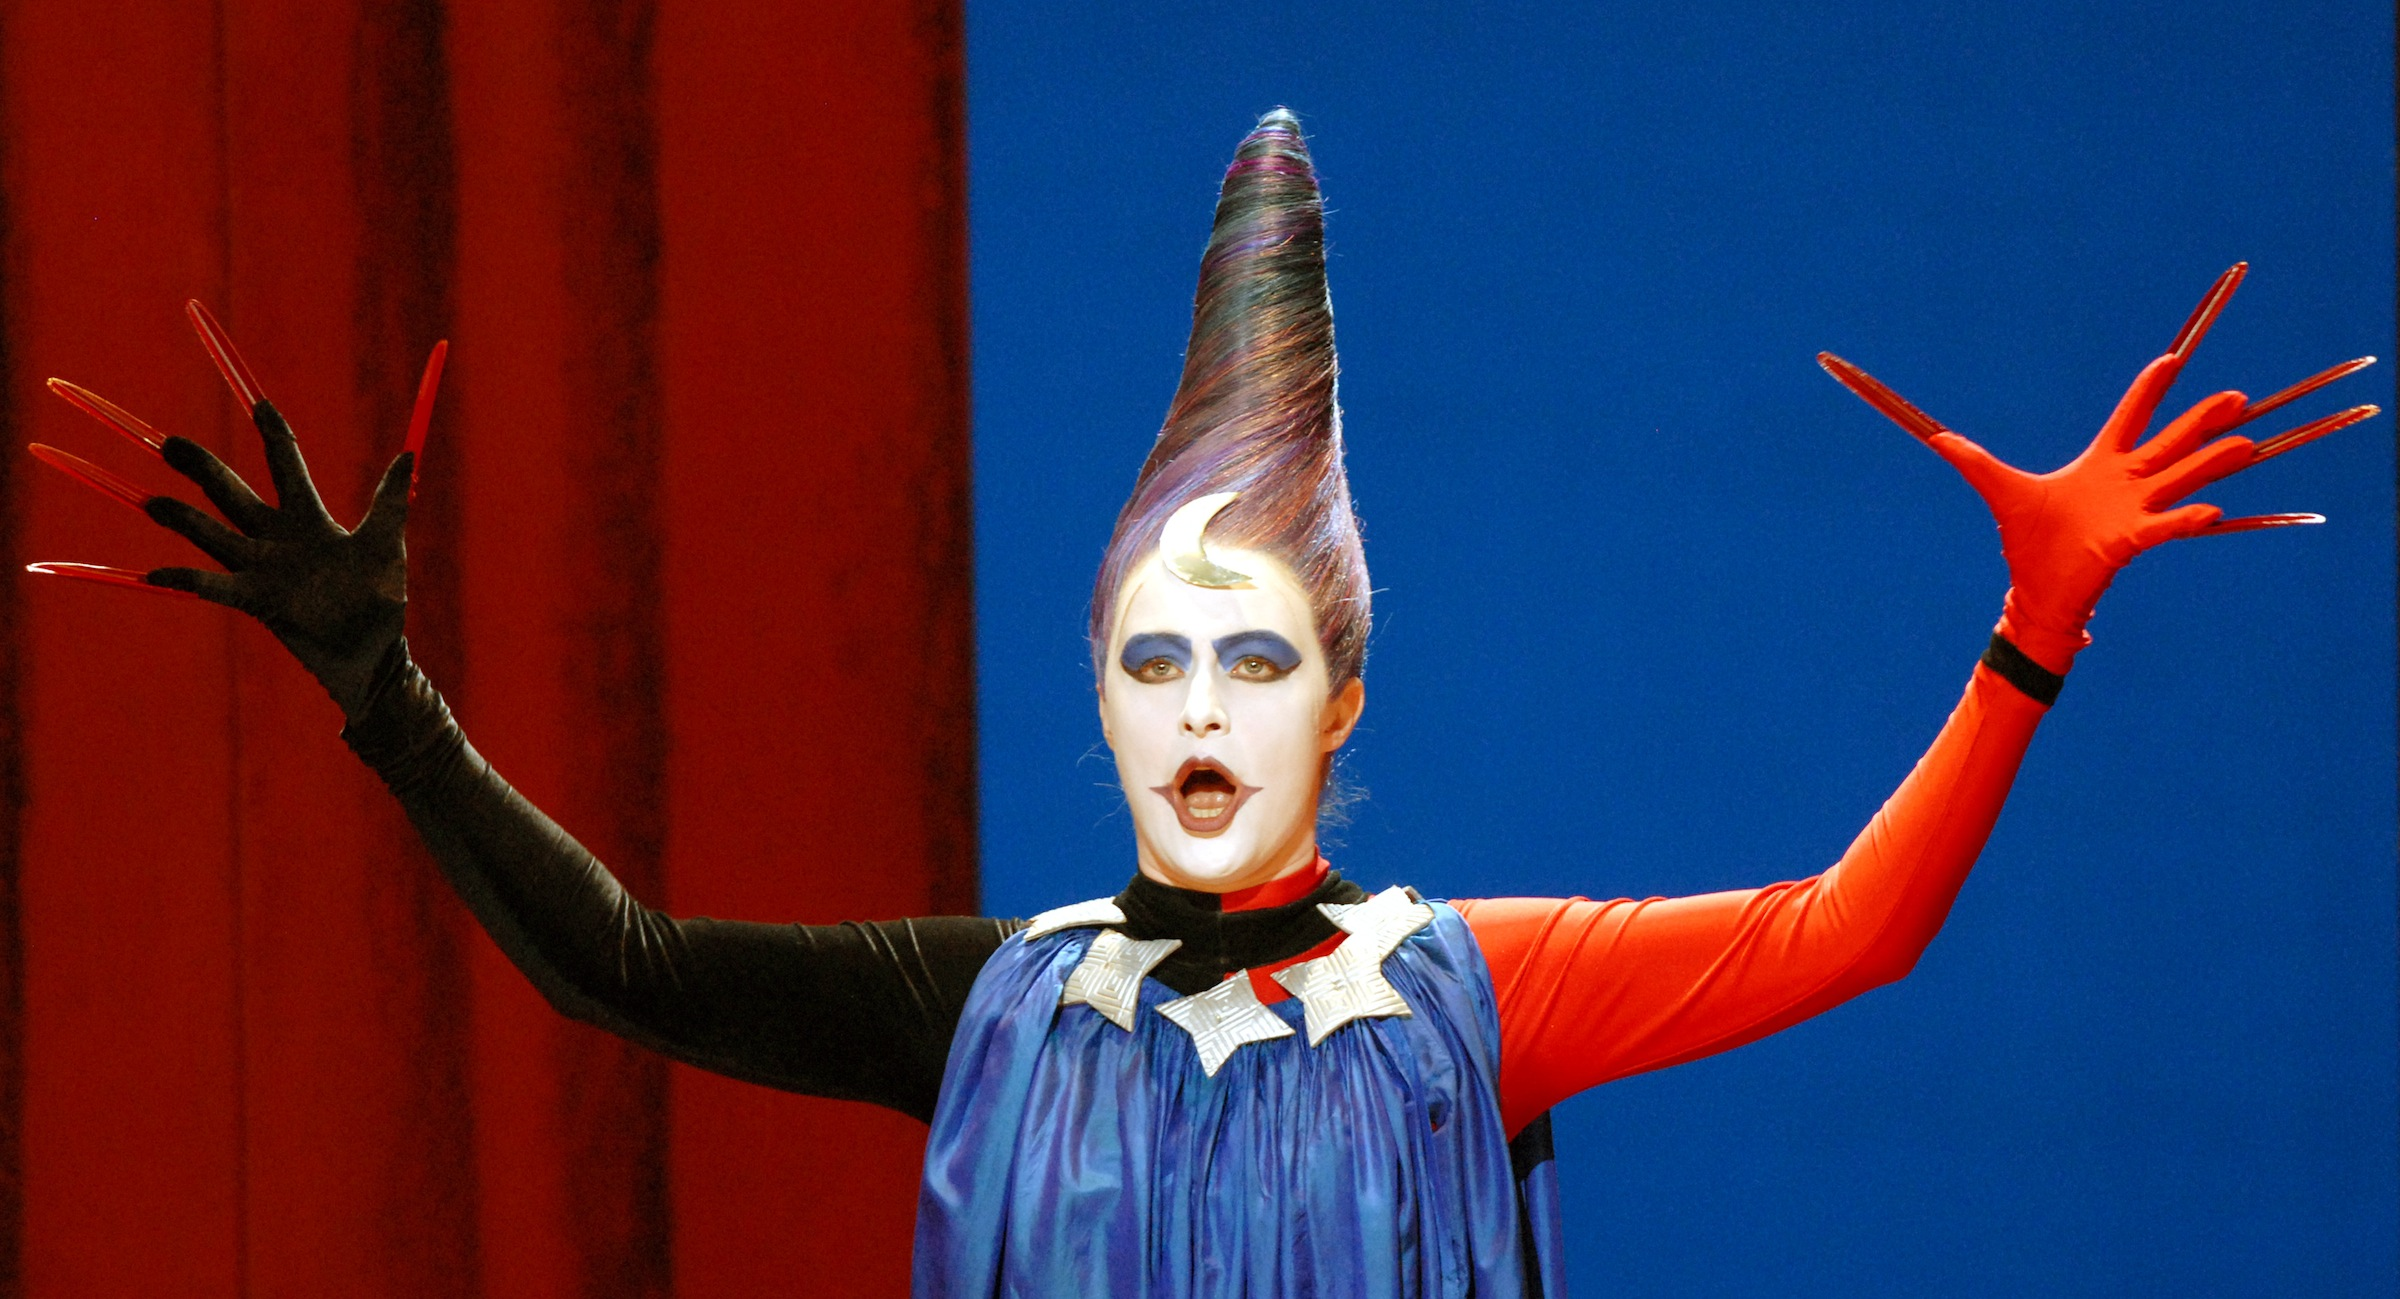 """Agnete Munk Rasmussen from Denmark performs as Queen of the Night during a rehearsal for the opera """"Die Zauberfloete"""" (The Magic Flute) by Wolfgang Amadeus Mozart at the Saxony state opera, the Semper Opera, in Dresden, Germany, Tuesday, May 30, 2006. The opera will have its premiere on Saturday June 3, 2006. (AP Photo/Matthias Rietschel)"""